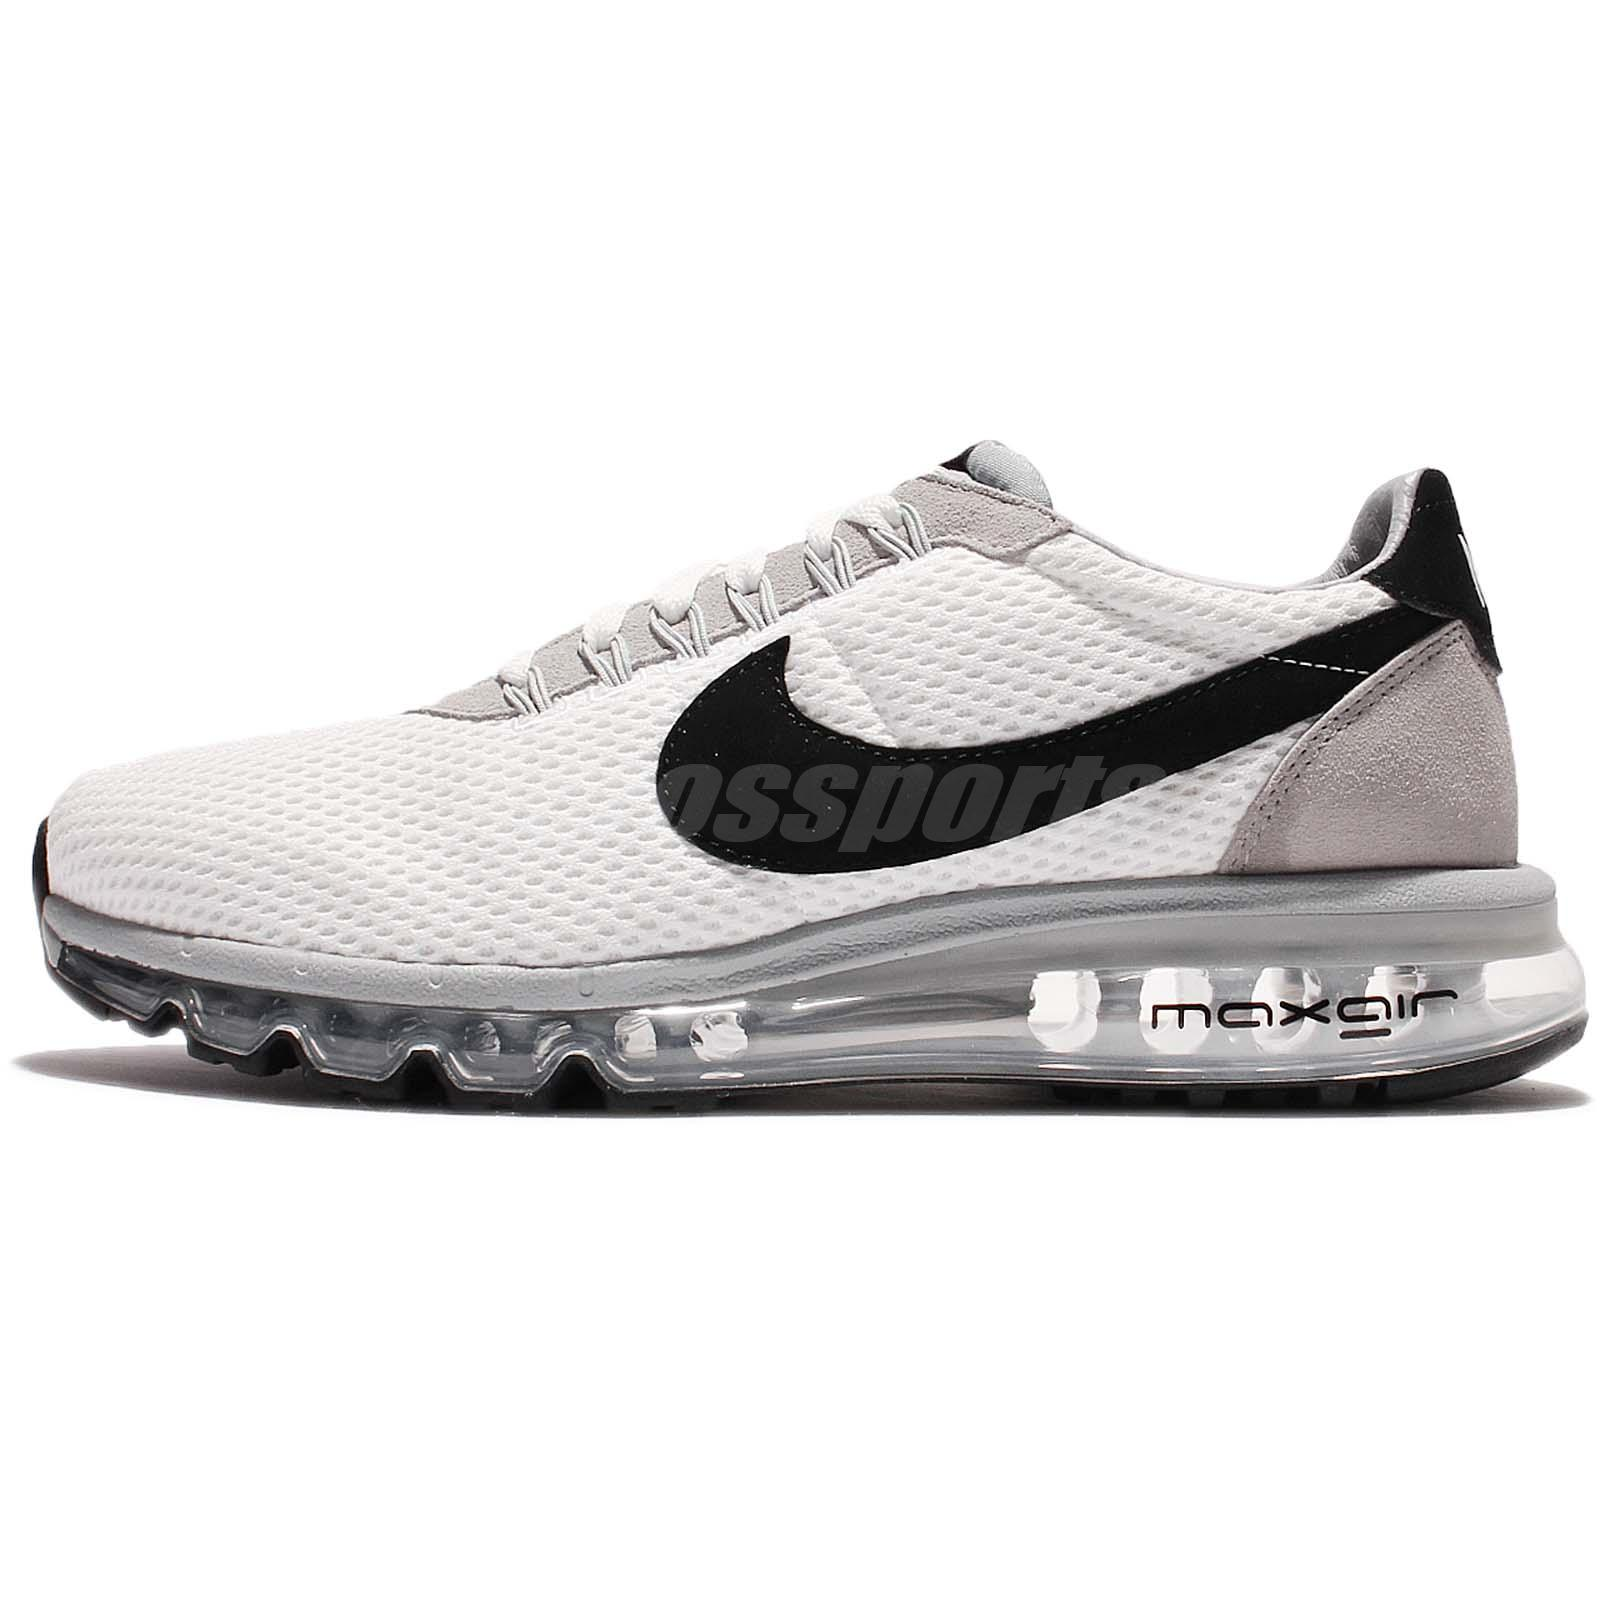 best sneakers 519ae 0ee6c ... canada nike air max ld zero summit white black men running shoes  sneakers 848624 101 fce96